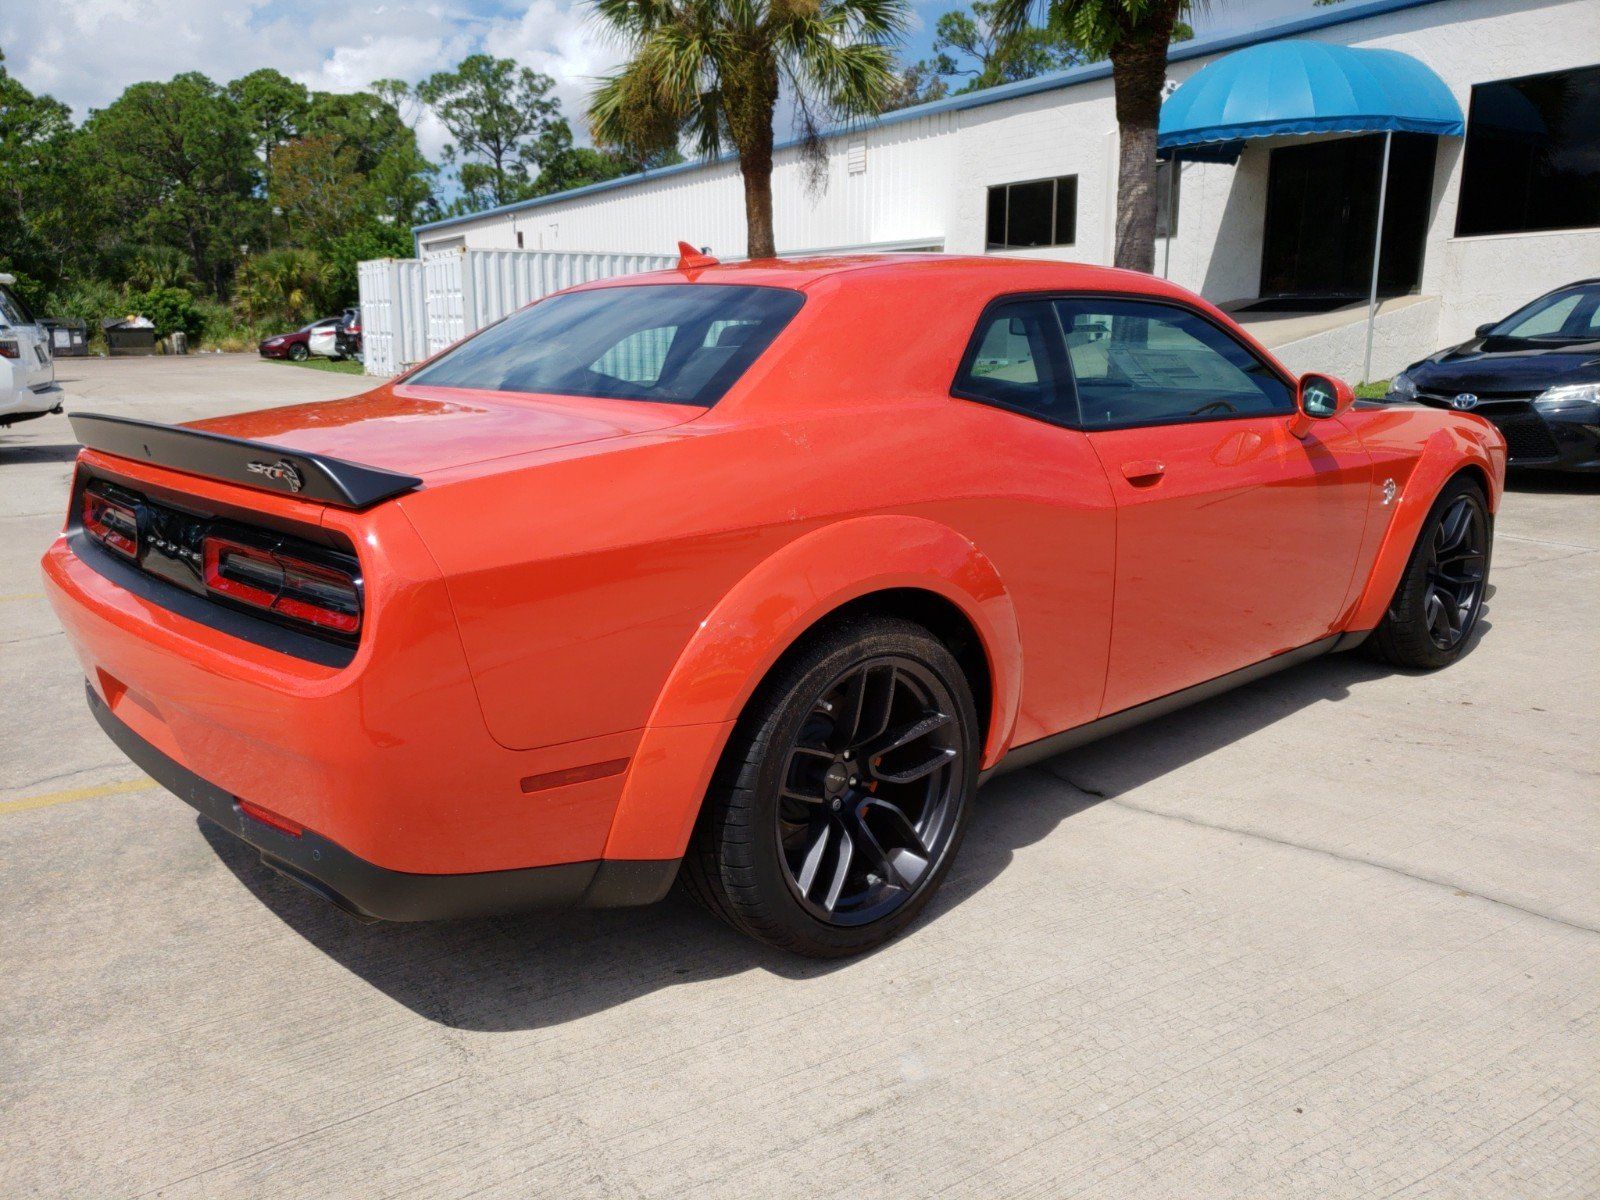 New 2018 Dodge Challenger Srt Hellcat Widebody Coupe In Titusville Speed Sensors For 5 7 L Chrysler 300c Hemi Schematic